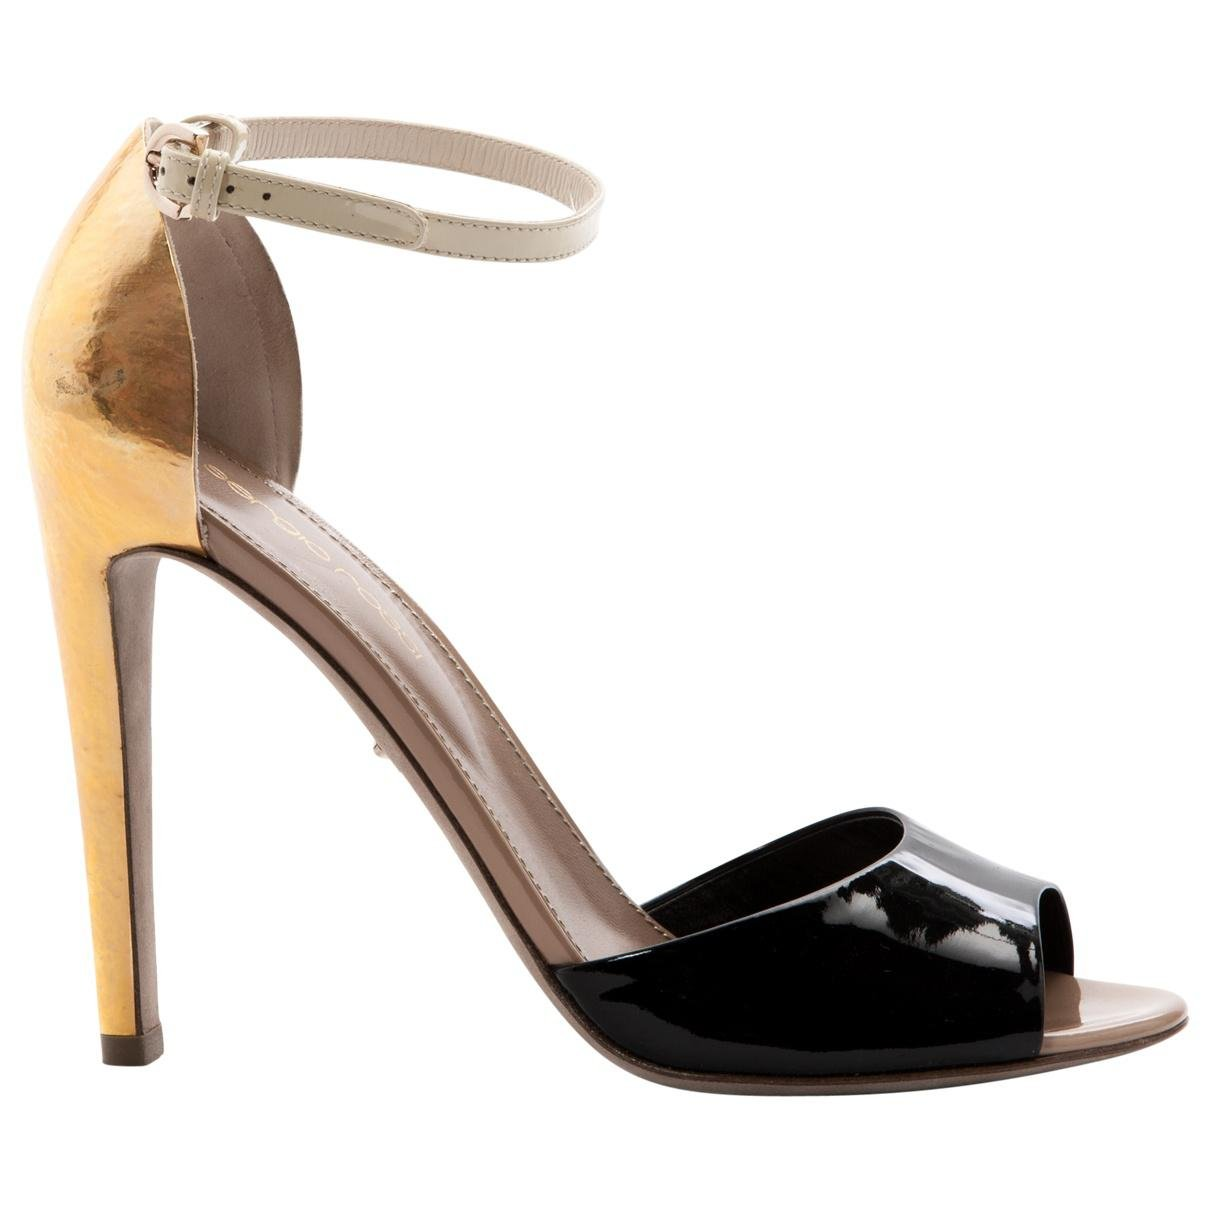 Pre-owned - Patent leather sandals Sergio Rossi